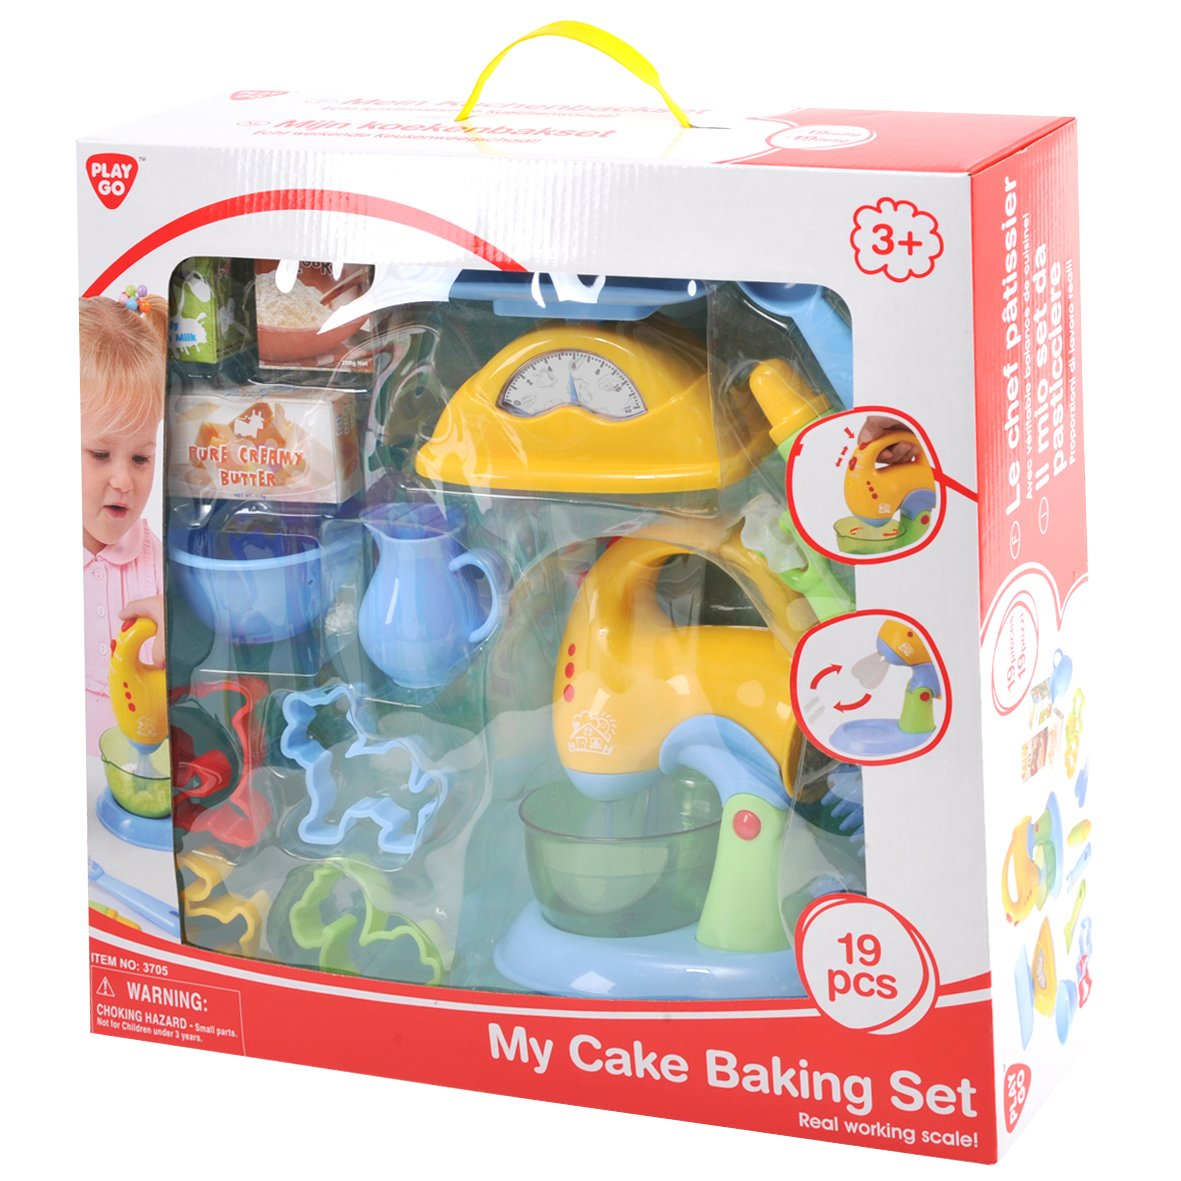 PlayGo My Cake Baking Set - 19 Pieces - Real Working Scale & Mixer!